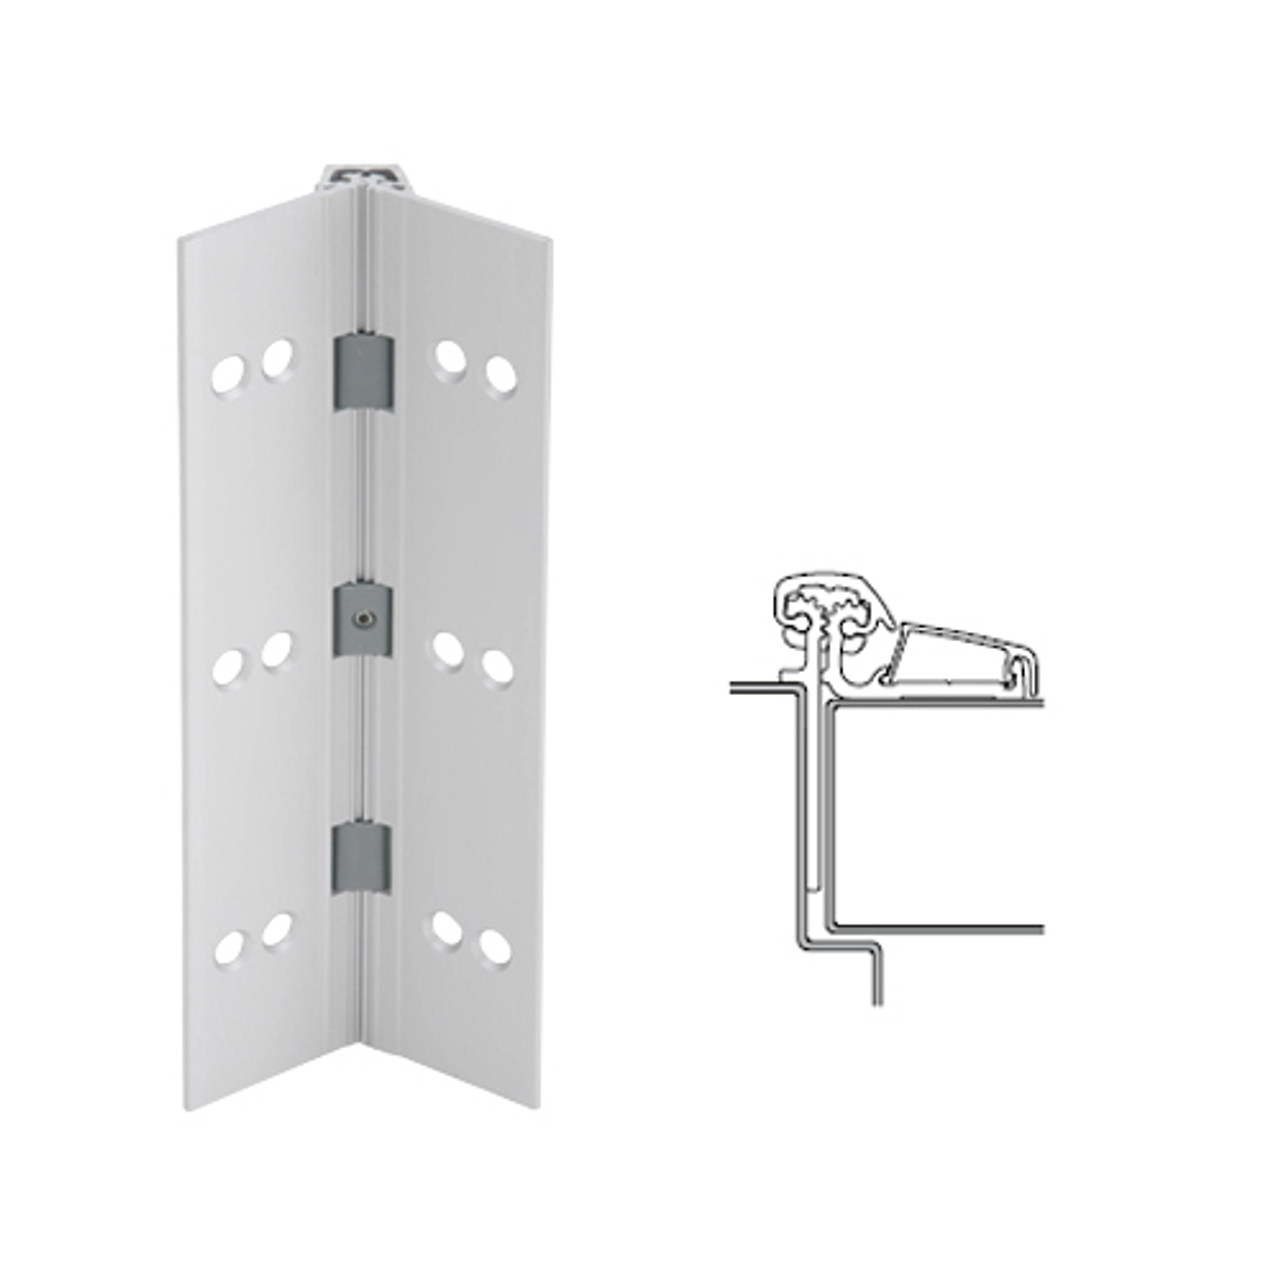 053XY-US28-85-SECWDWD IVES Adjustable Half Surface Continuous Geared Hinges with Security Screws - Hex Pin Drive in Satin Aluminum